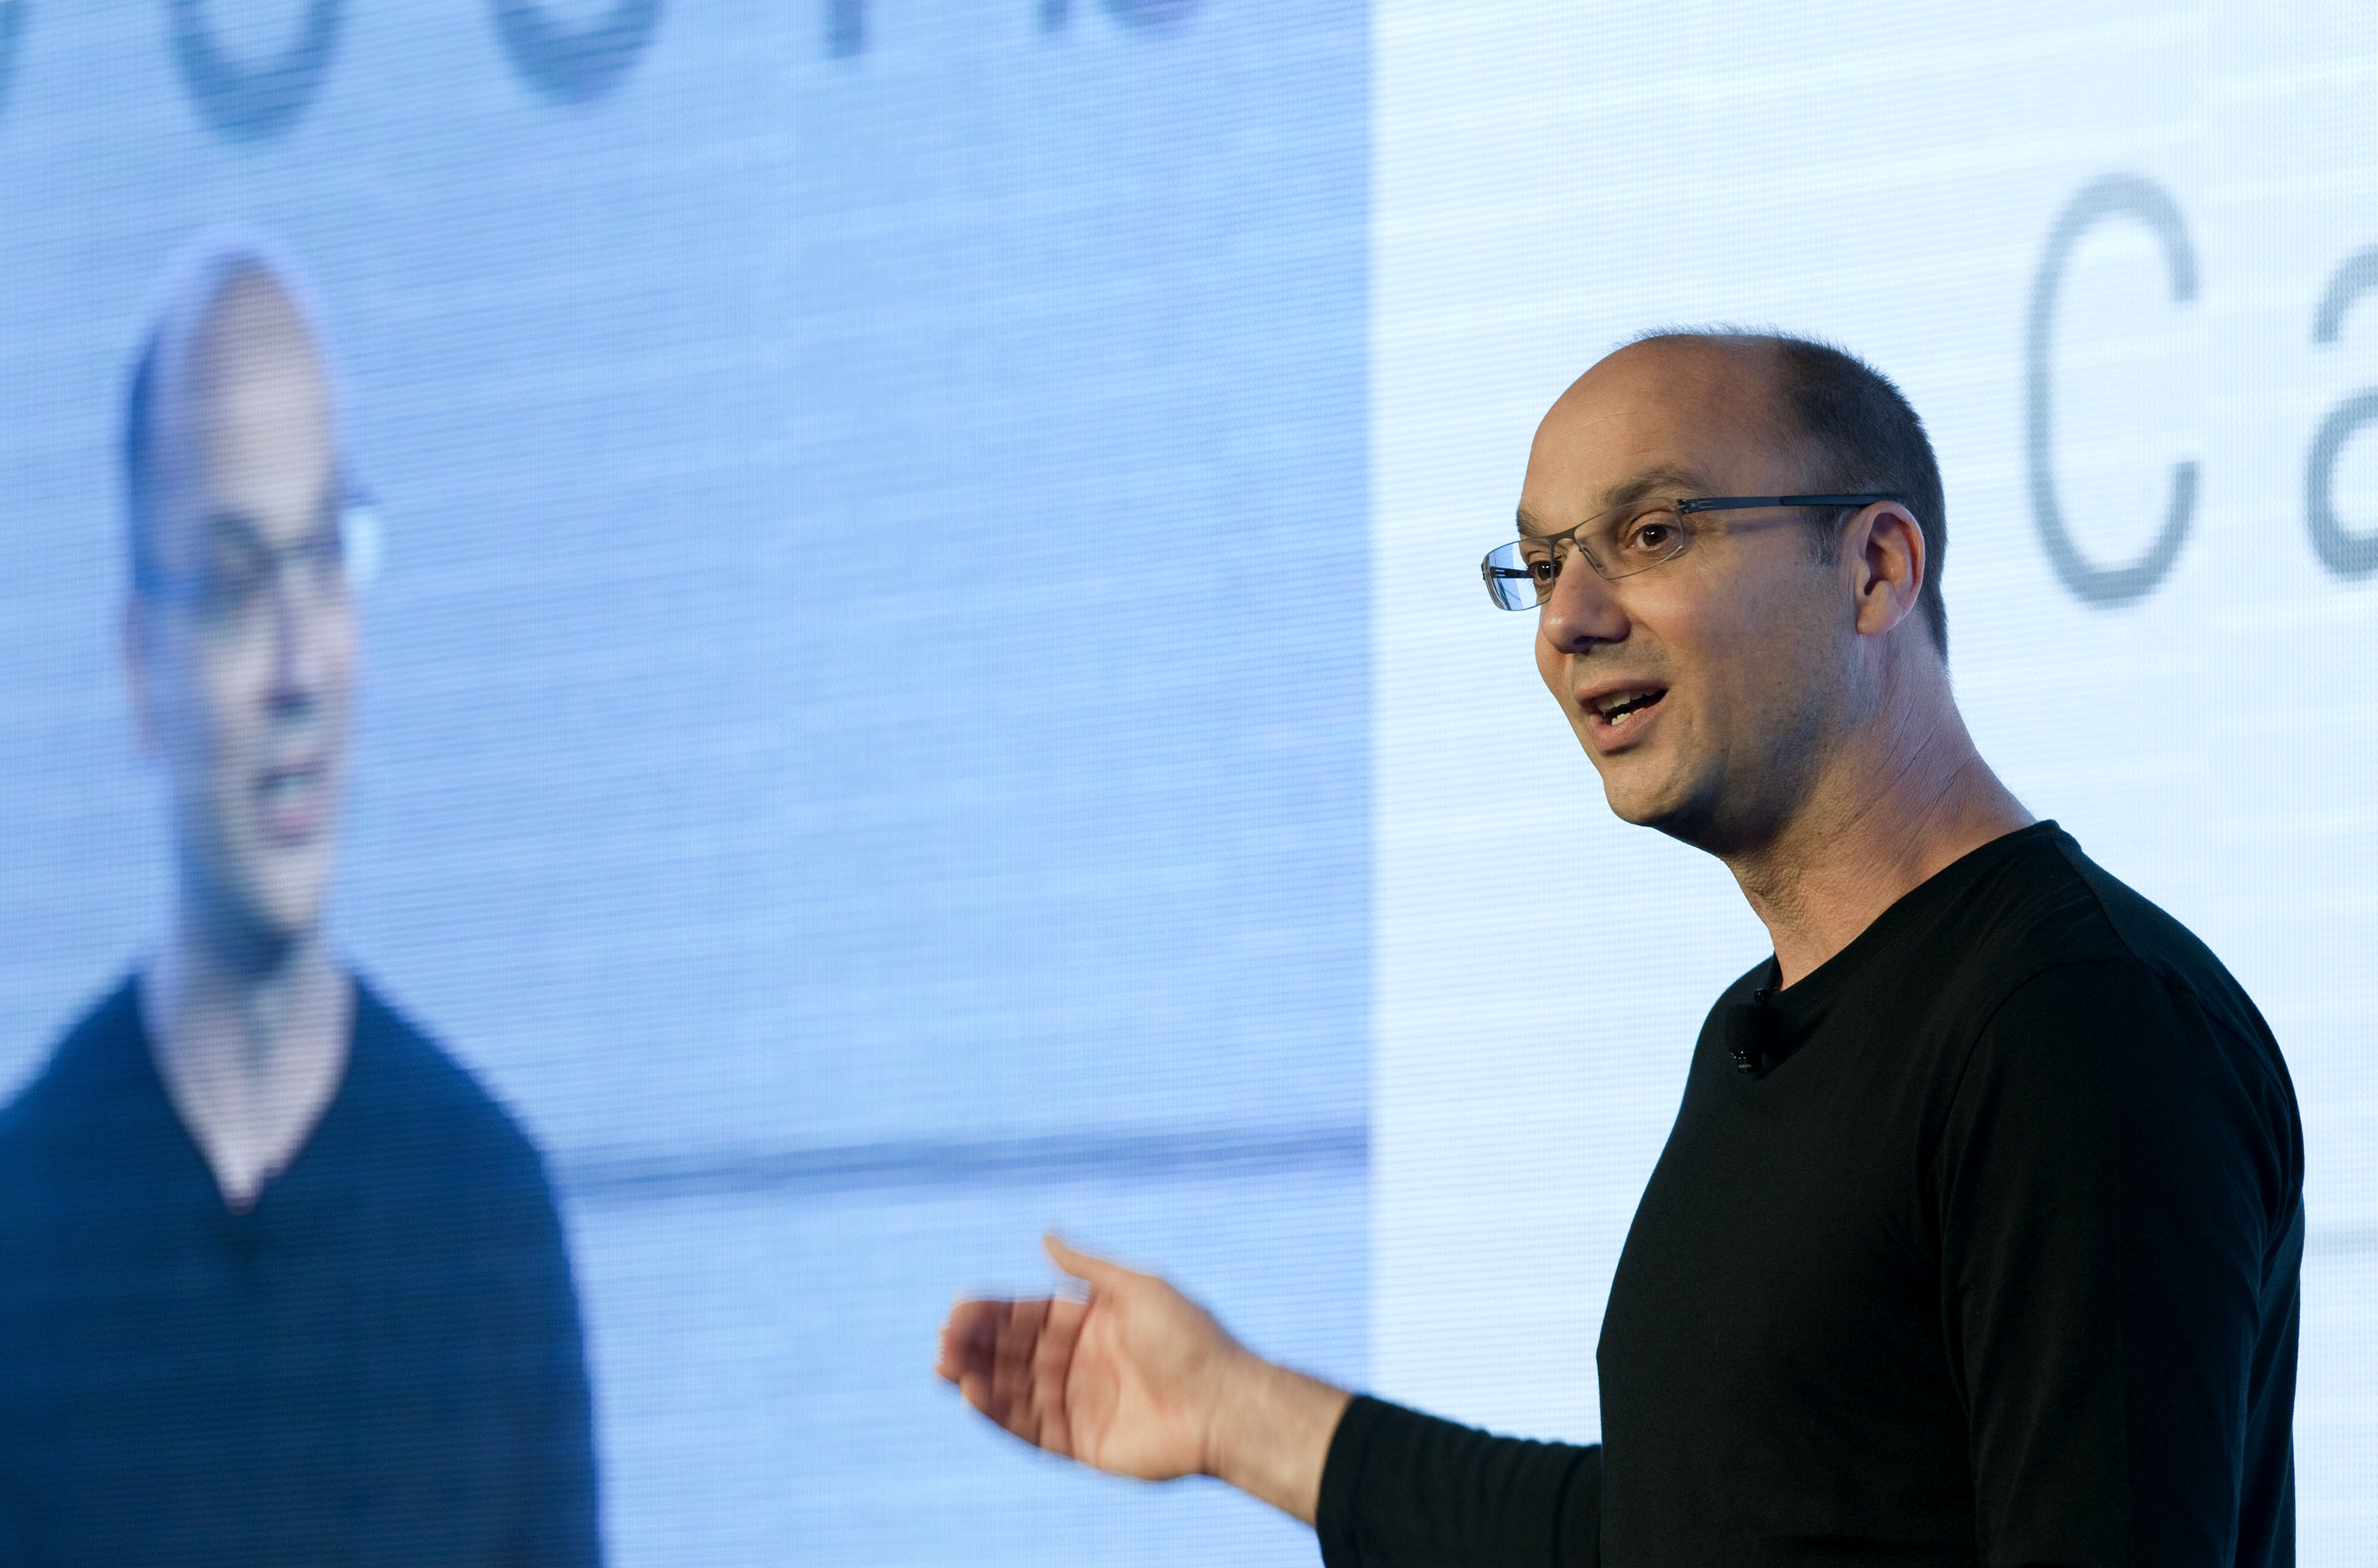 Andy Rubin, senior vice-president of Google Inc.'s mobile division, speaks during an event in Hong Kong, China, on Wednesday, Oct. 19, 2011.